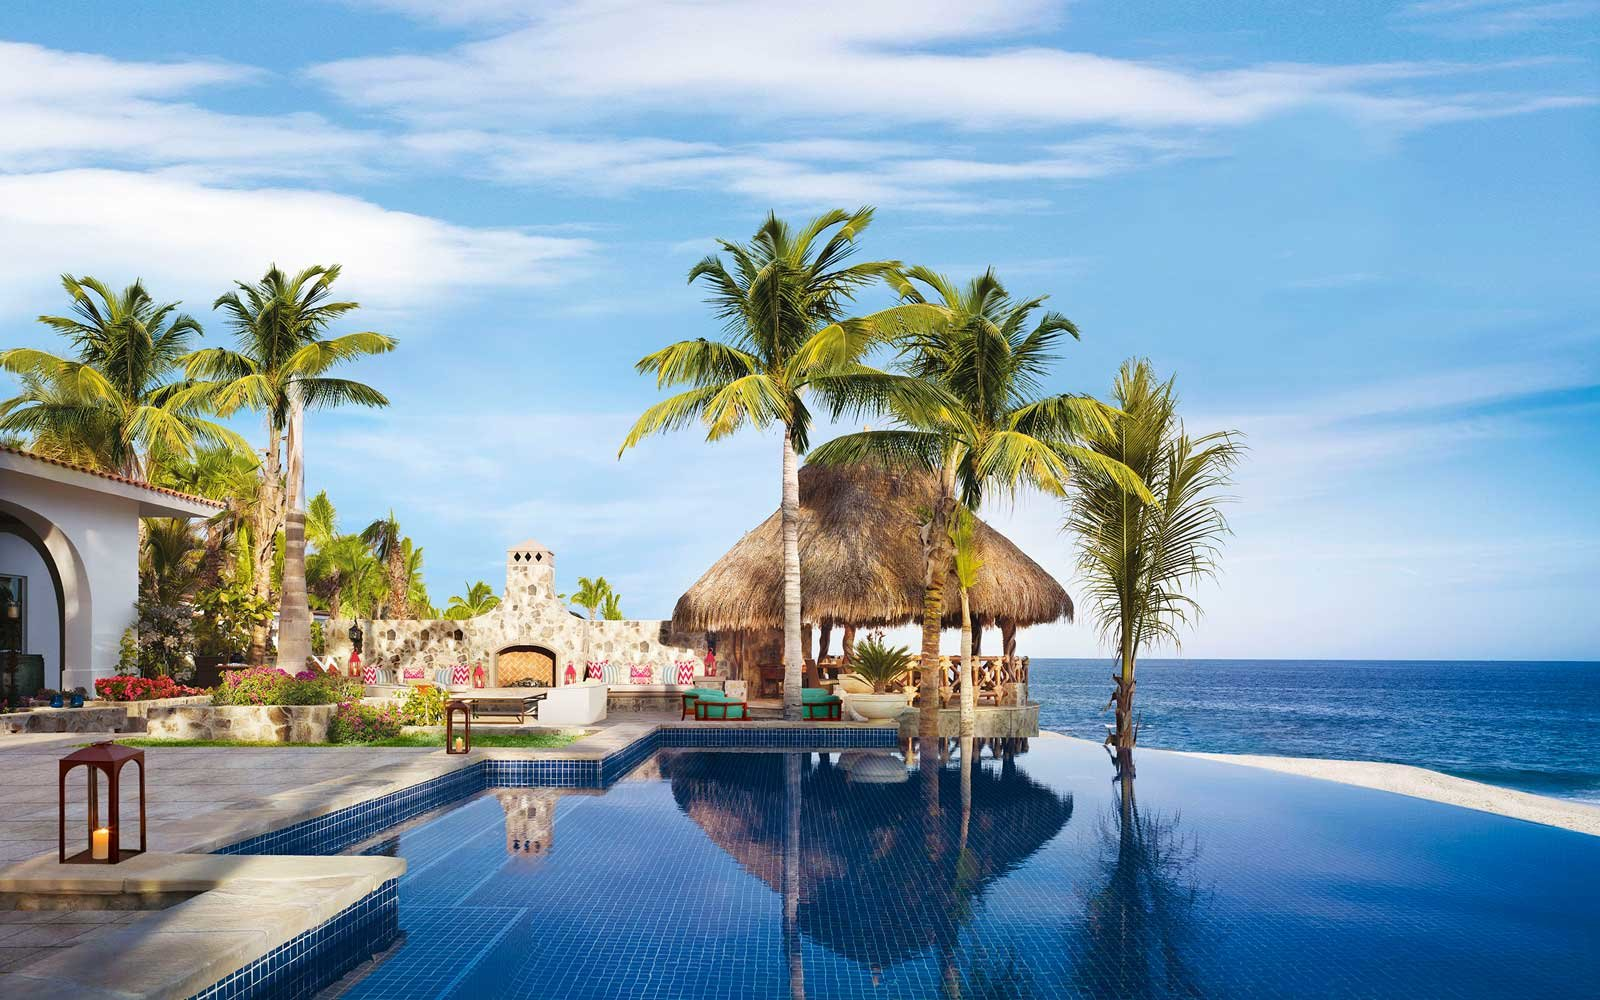 Maya World Hotel is your perfect vacation